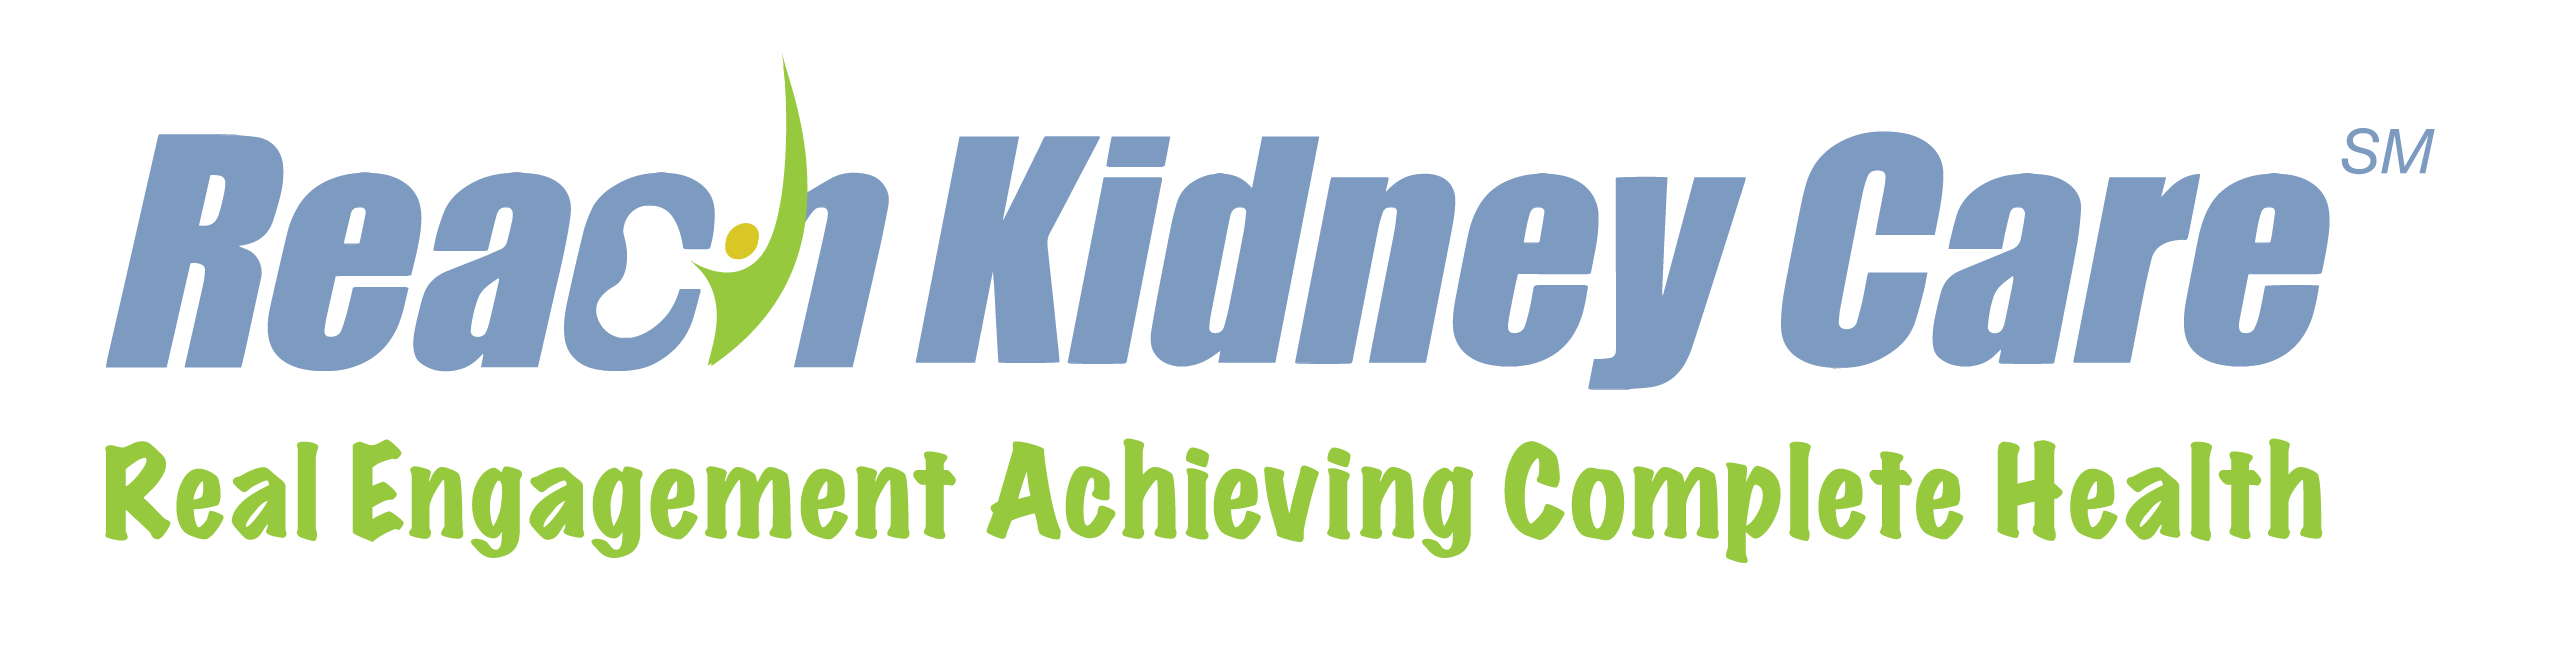 reach kidney care